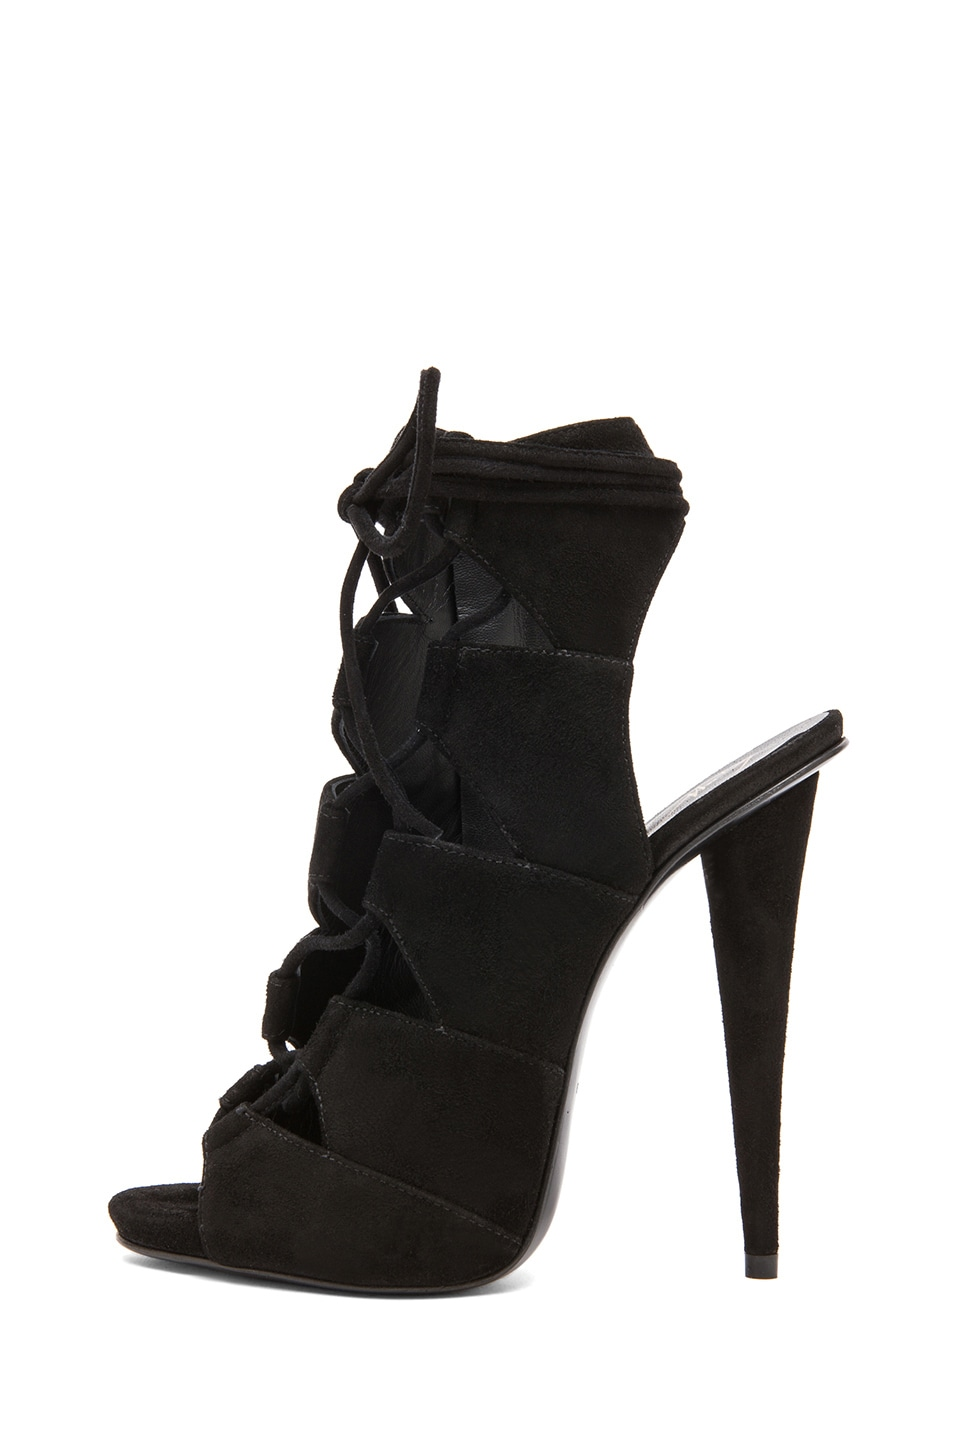 Image 1 of Giuseppe Zanotti Suede Lace Up Heels in Black Suede